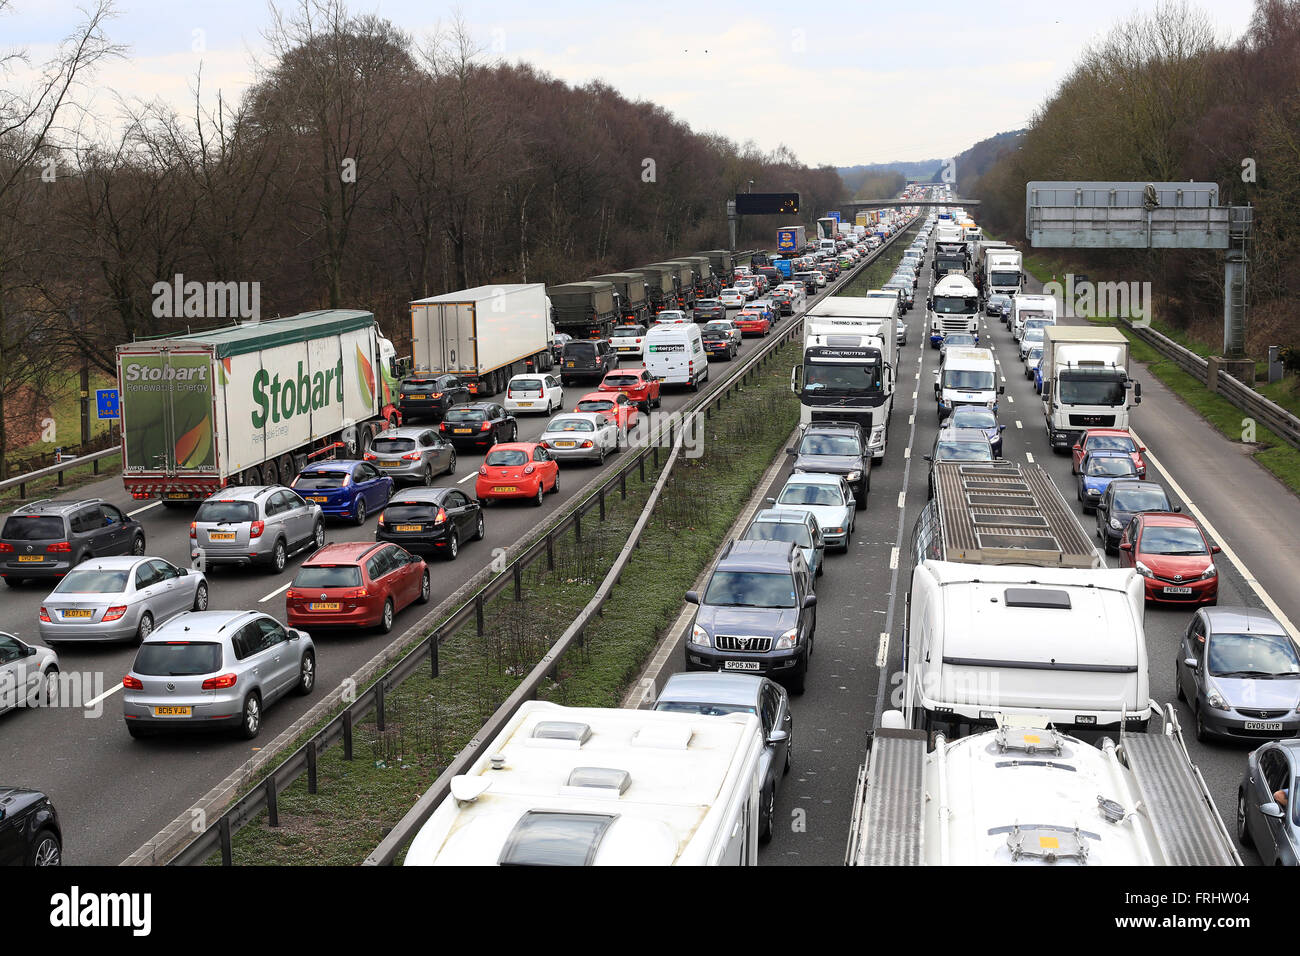 Picture shows M6 motorway misery in Staffordshire traffic jams across 6 lanes of motorway - Stock Image